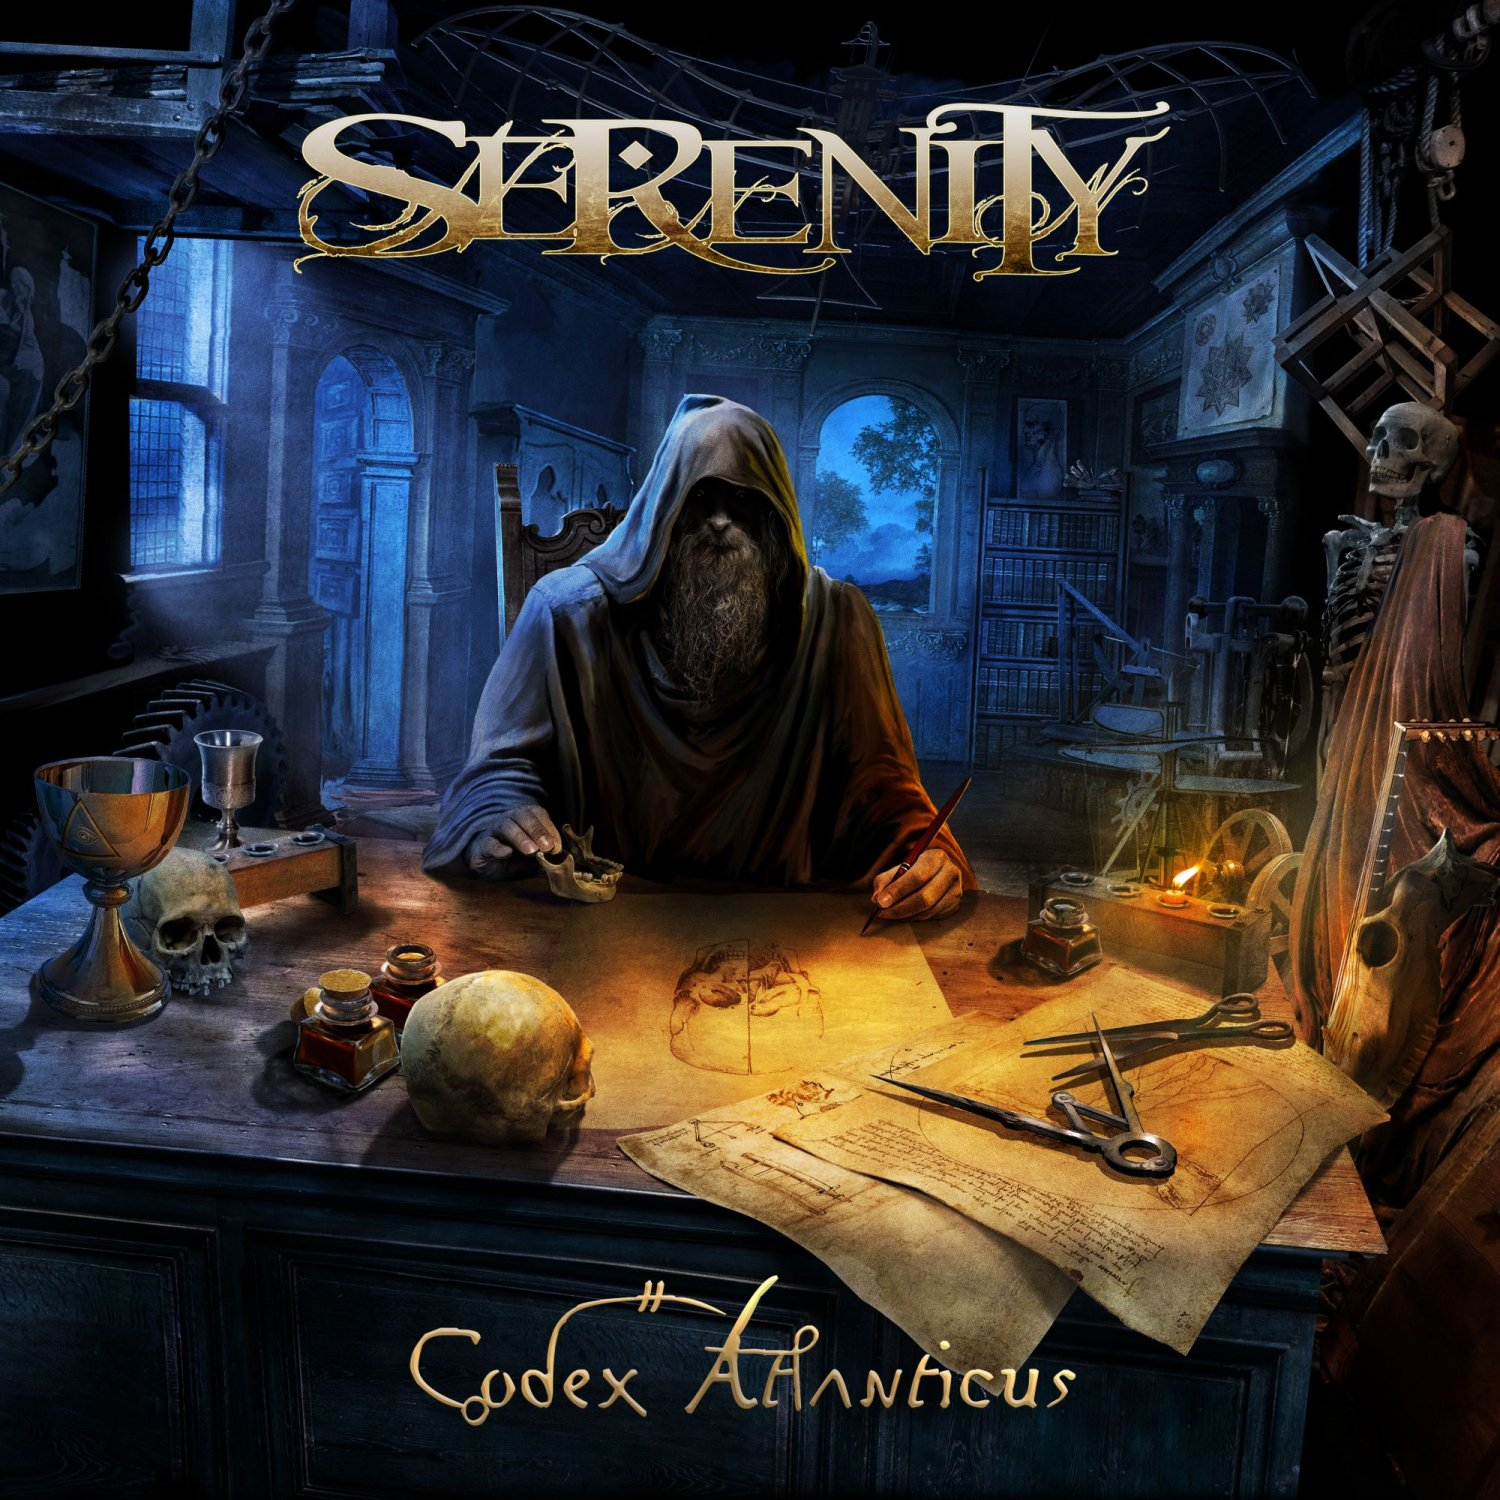 SERENITY_Codex Atlanicus